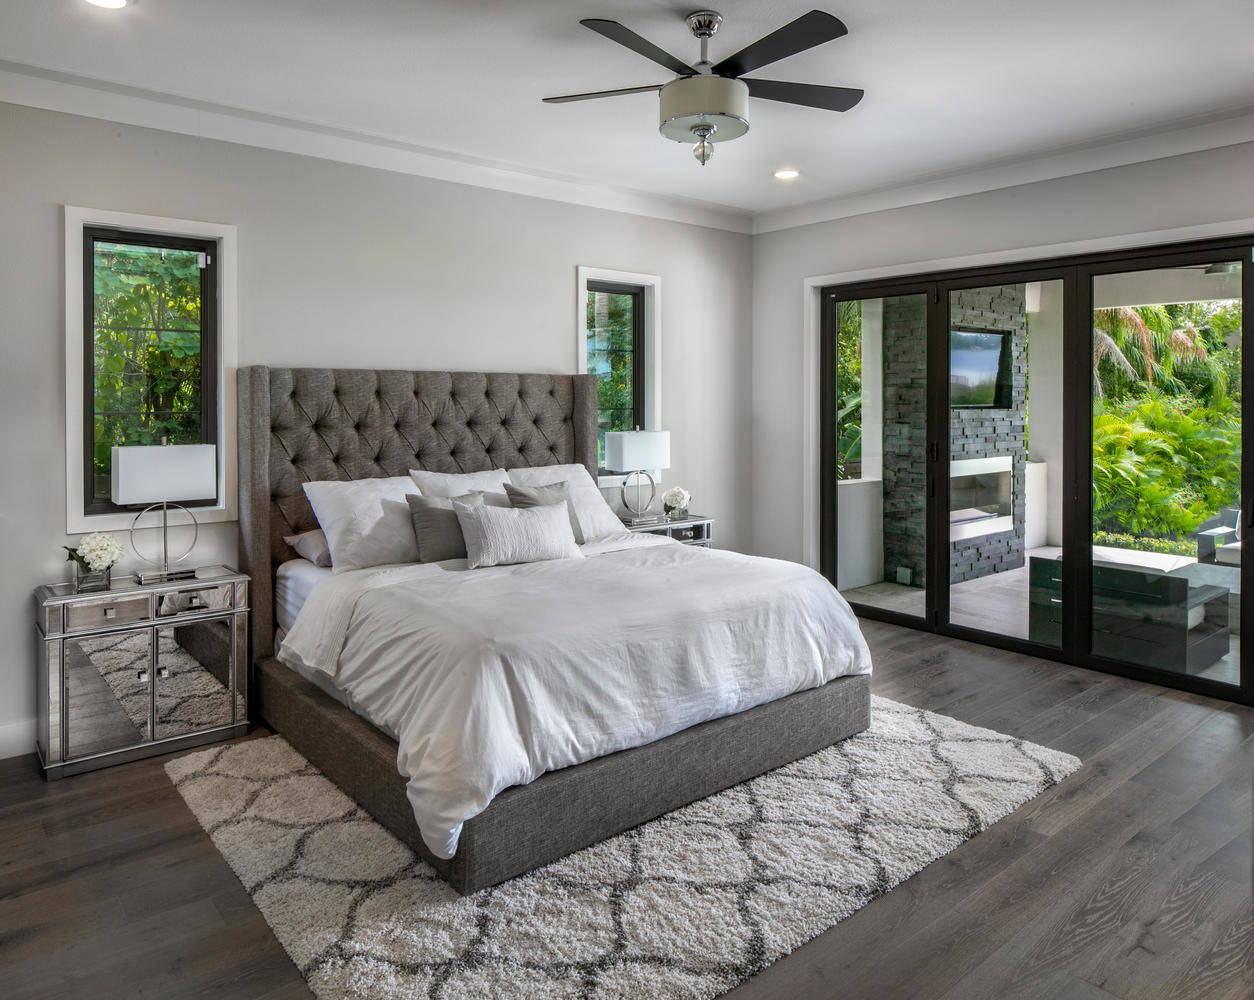 75 Beautiful Modern Bedroom Pictures Ideas September 2020 Houzz